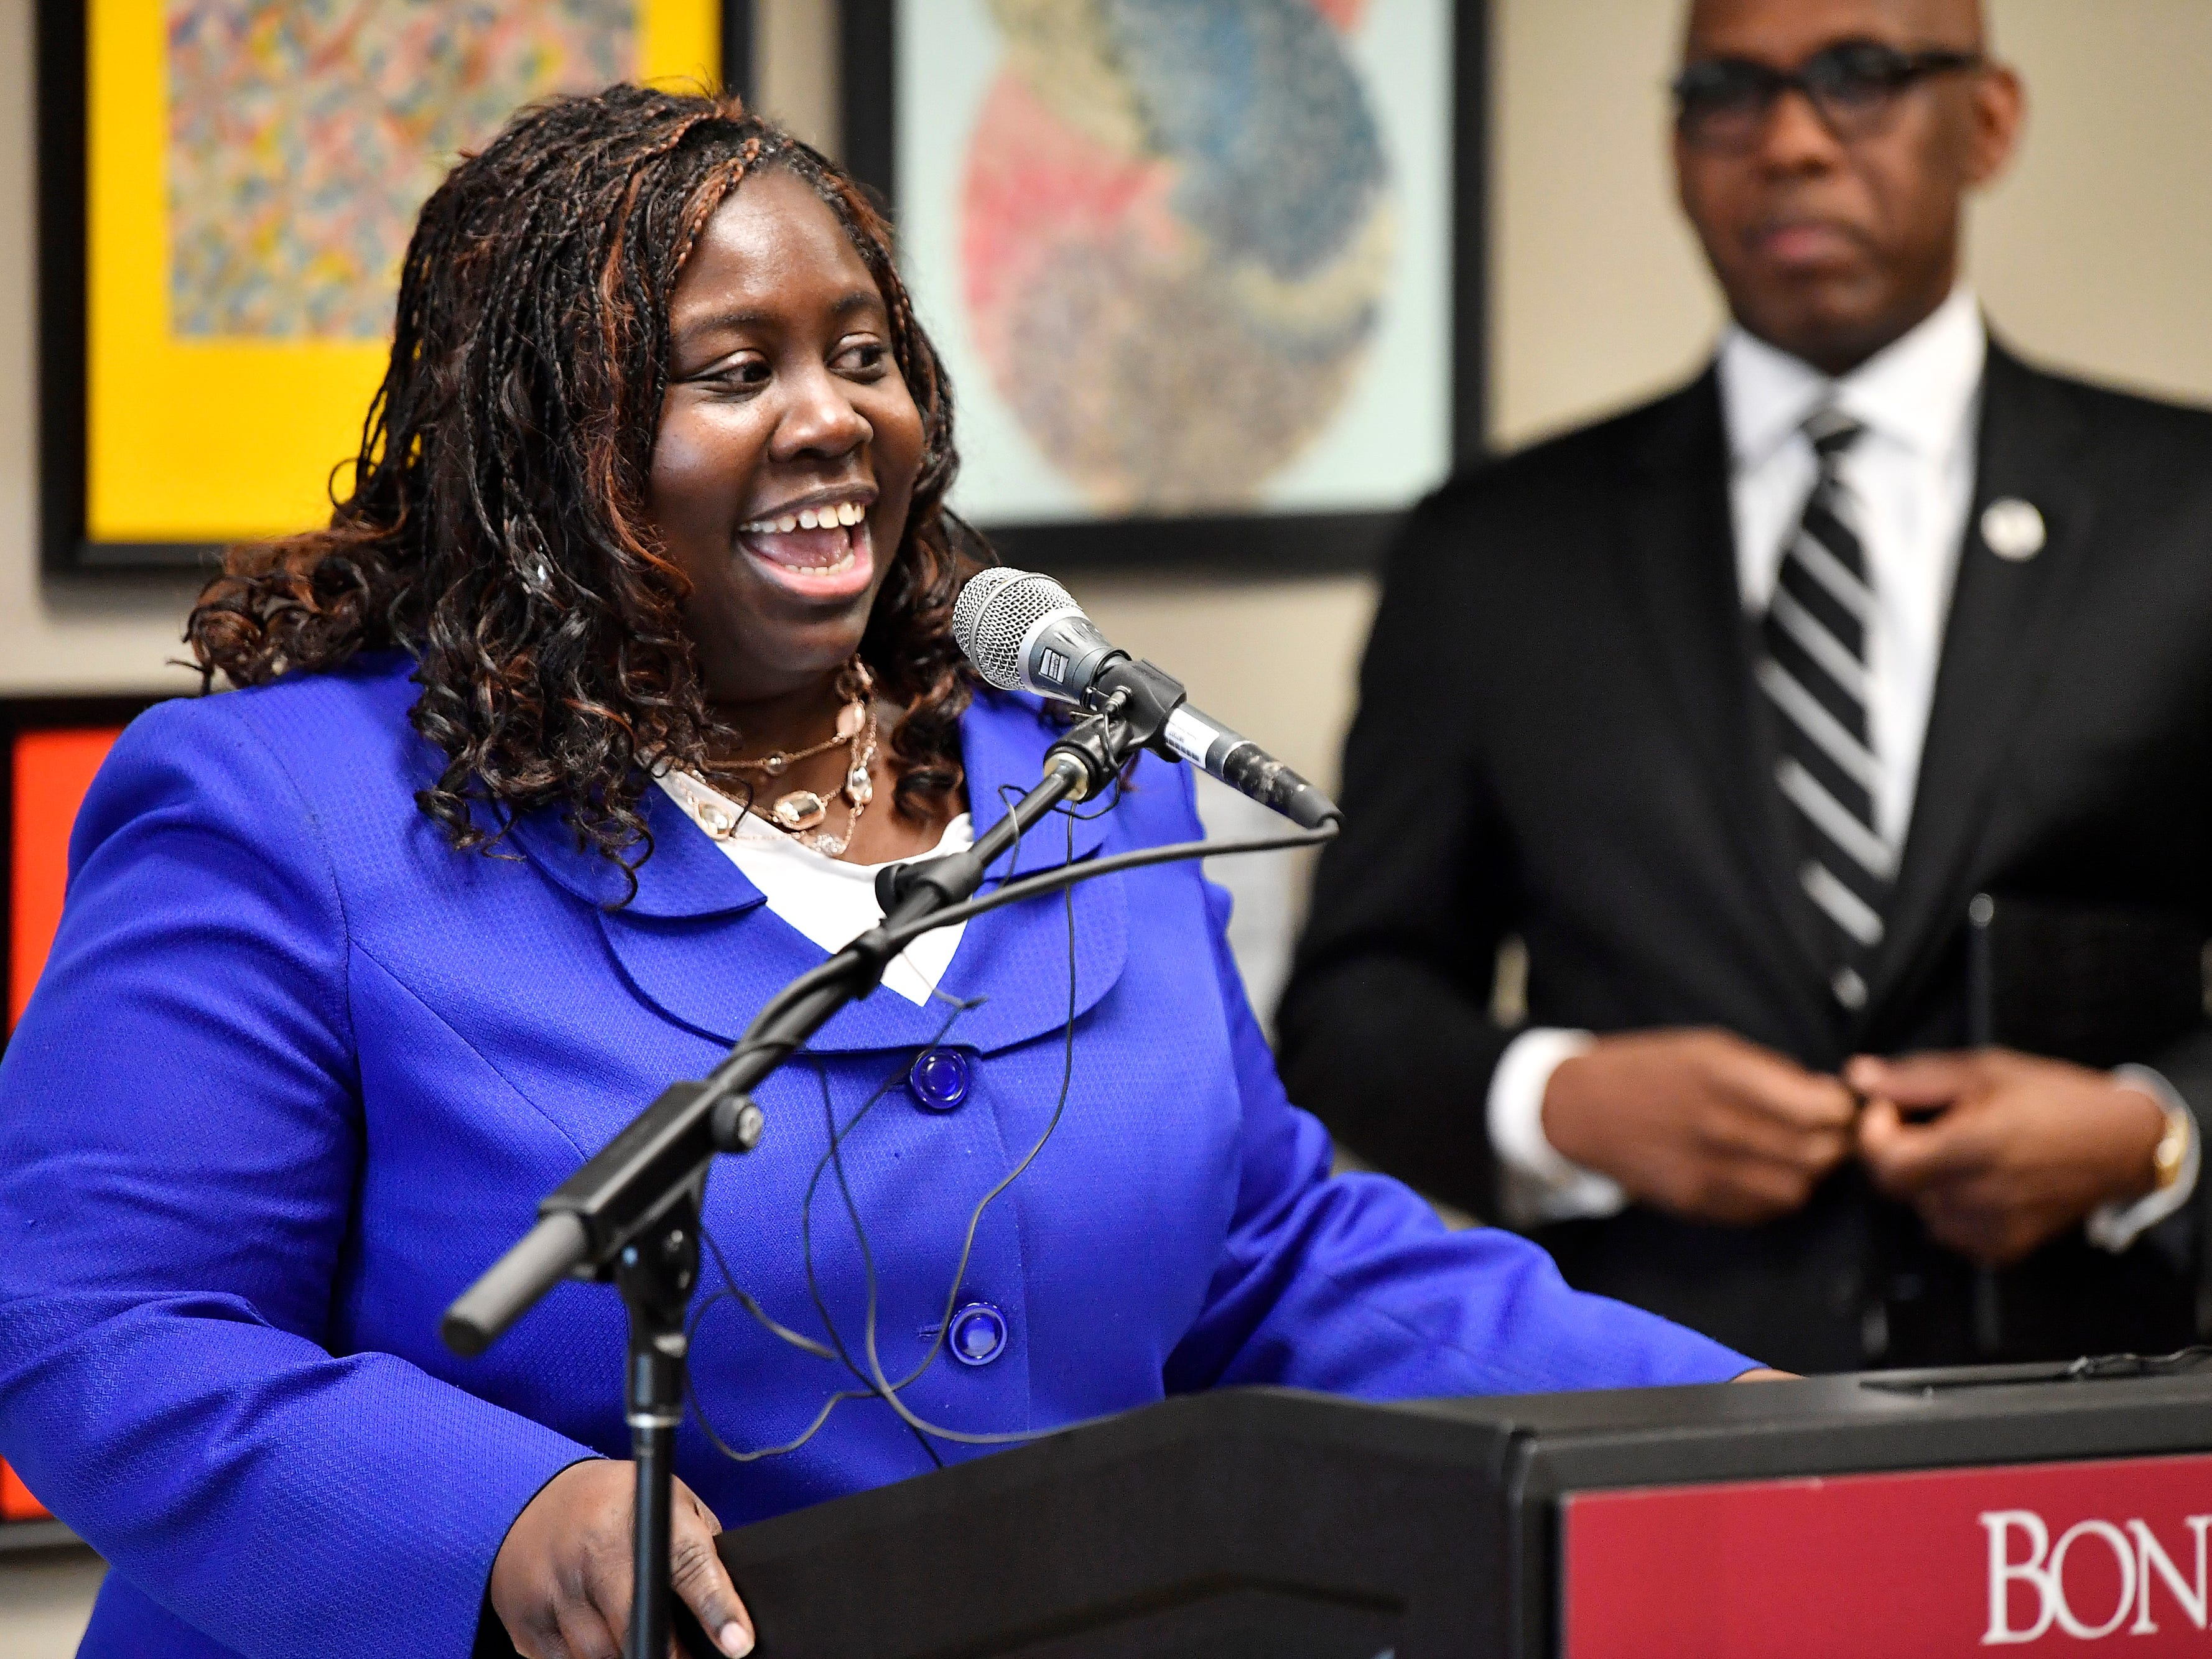 Juvenile Court Judge Sheila Calloway speaks at a press conference Monday, Jan. 7, 2019, in Nashville, Tenn., after Gov. Bill Haslam granted full clemency to Cyntoia Brown, and set an Aug. 7 release date for her from prison.